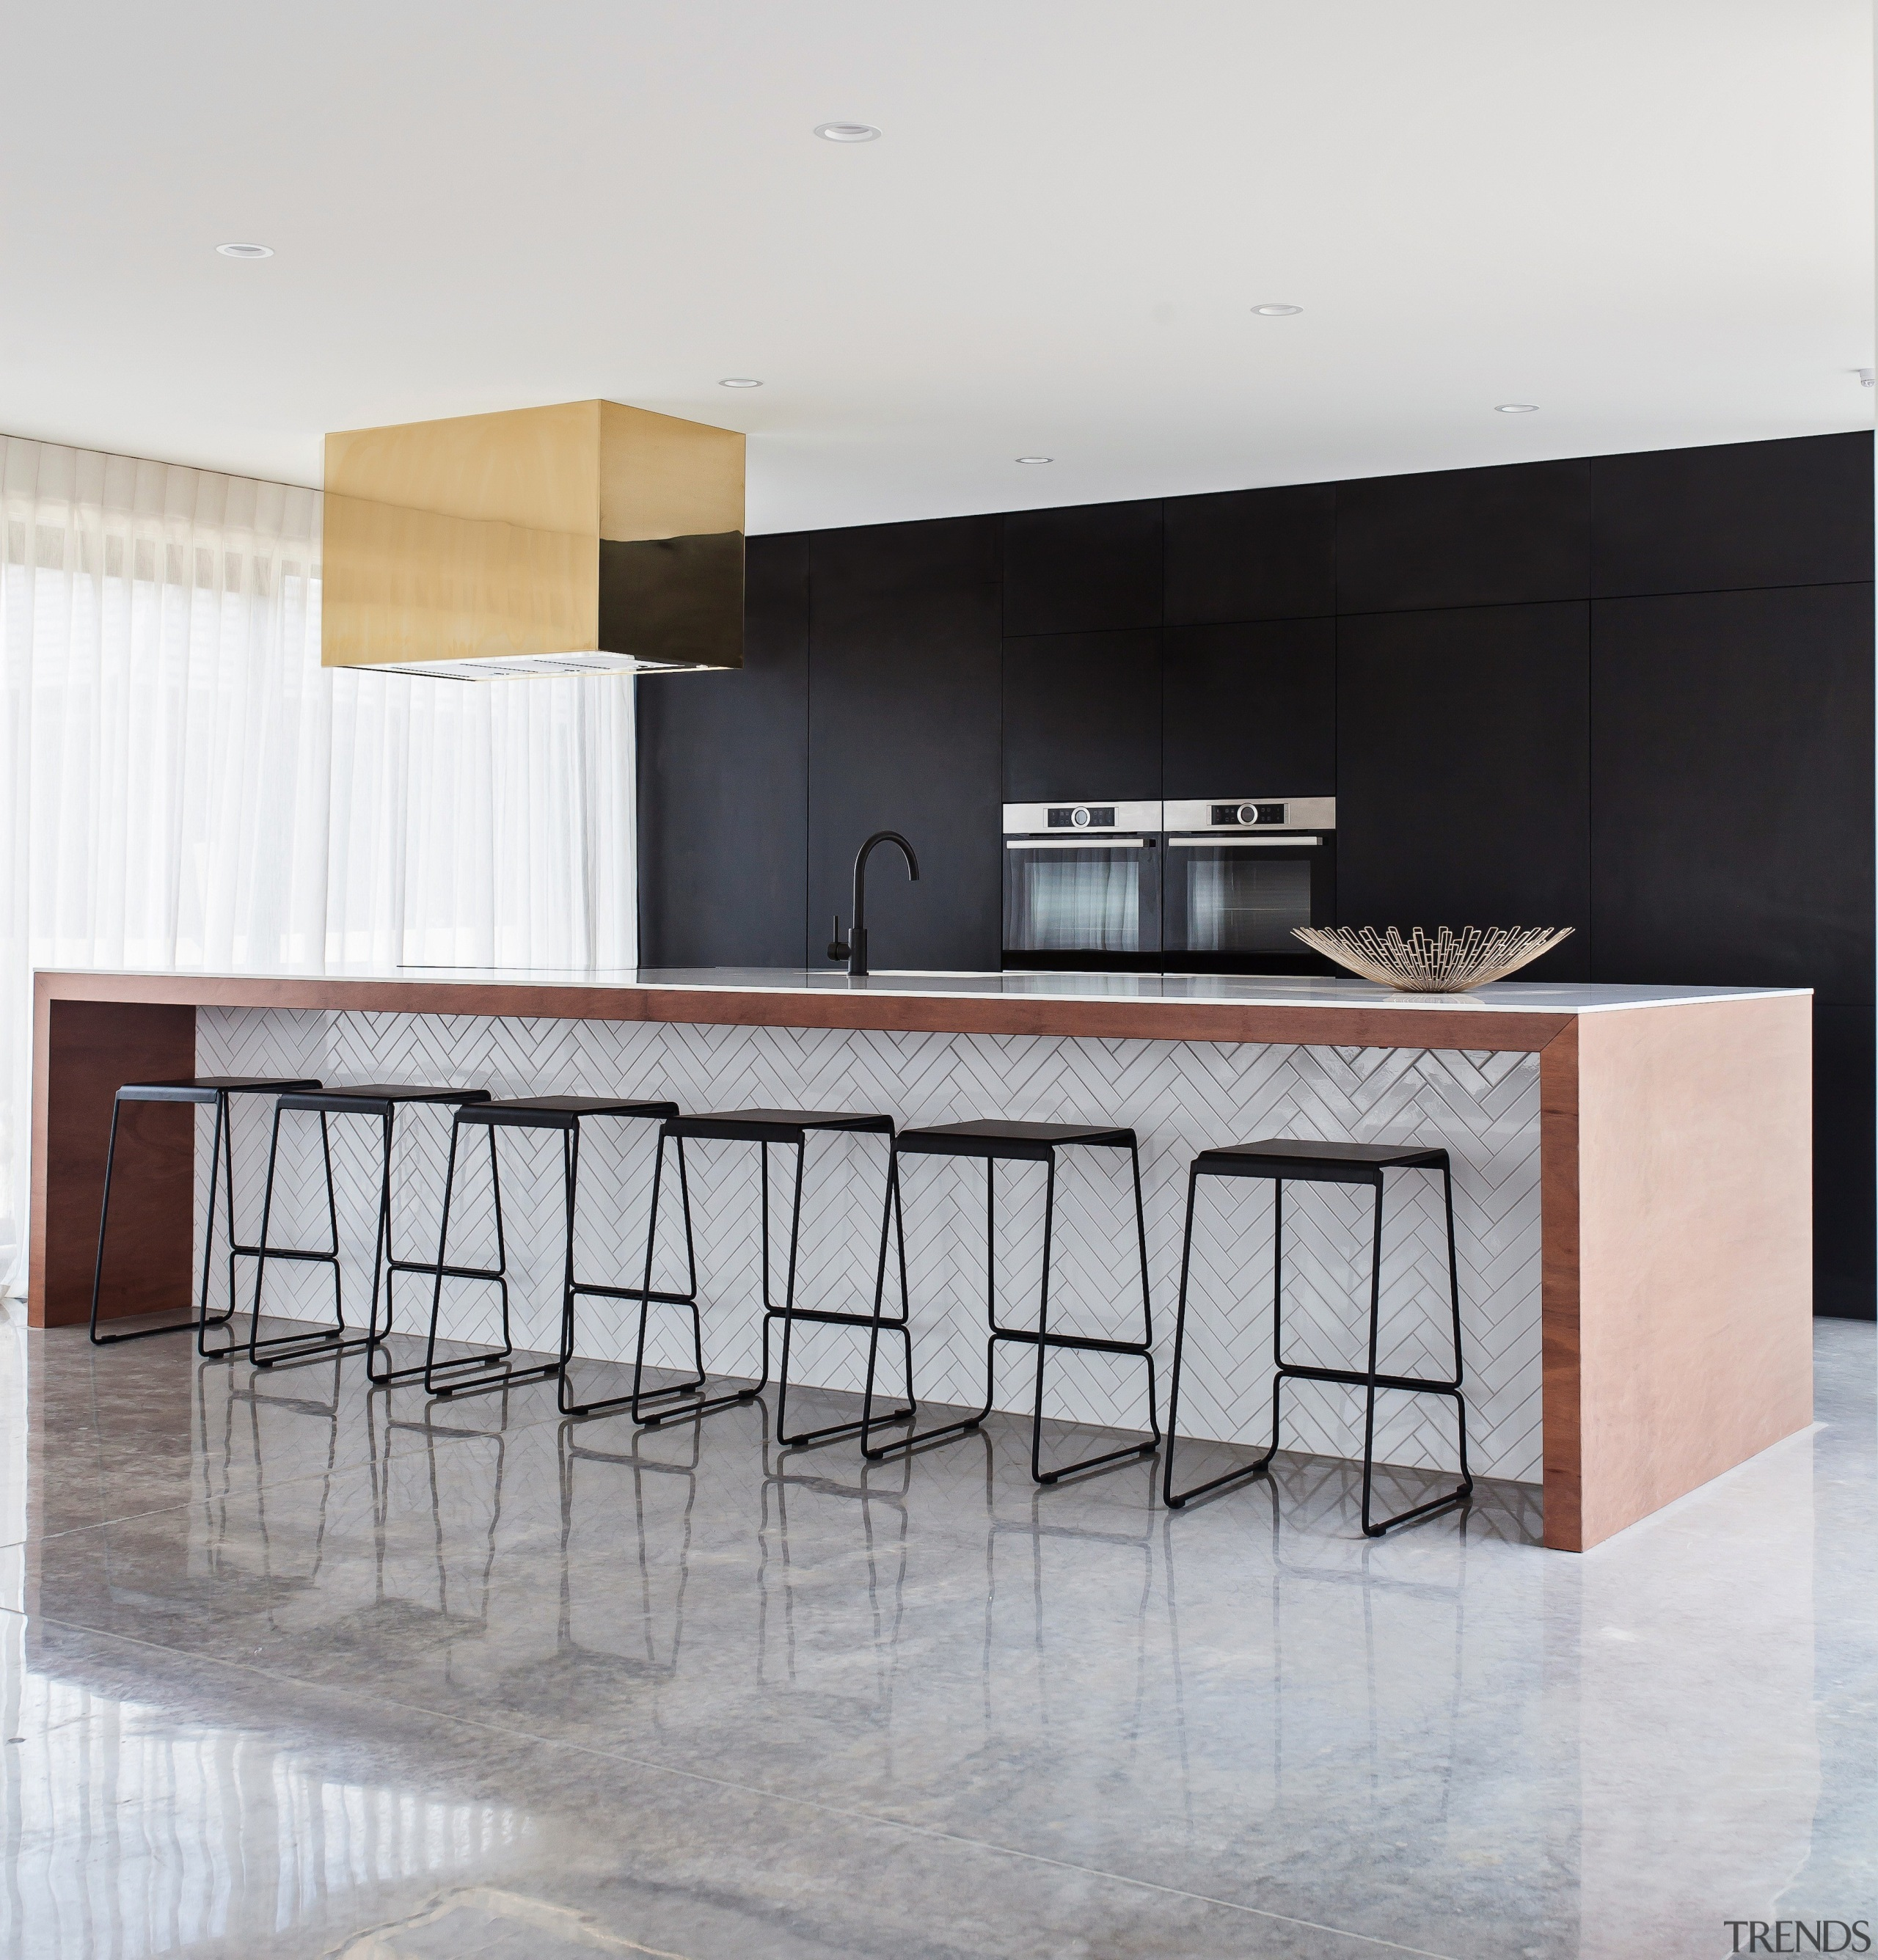 TIDA New Zealand Kitchens – proudly brought to architecture, chair, countertop, floor, flooring, furniture, interior design, kitchen, product design, table, gray, white